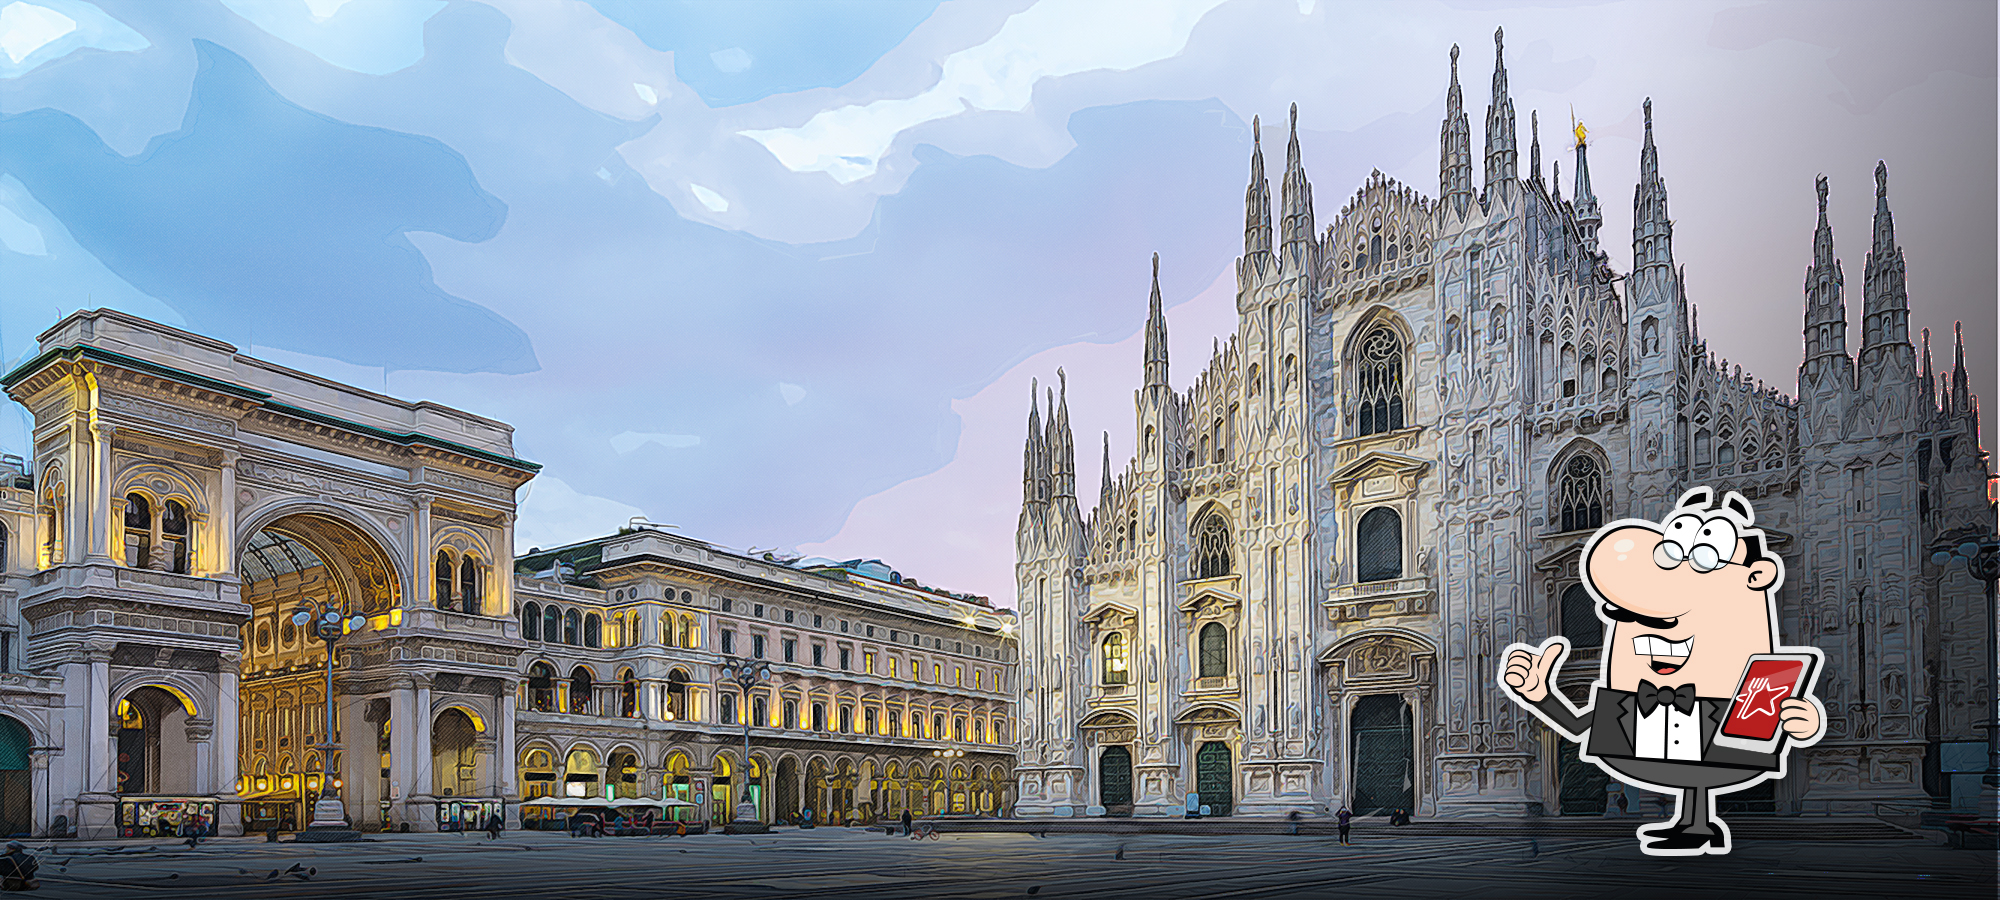 10 traditional Italian dishes: eat like a local in Milan